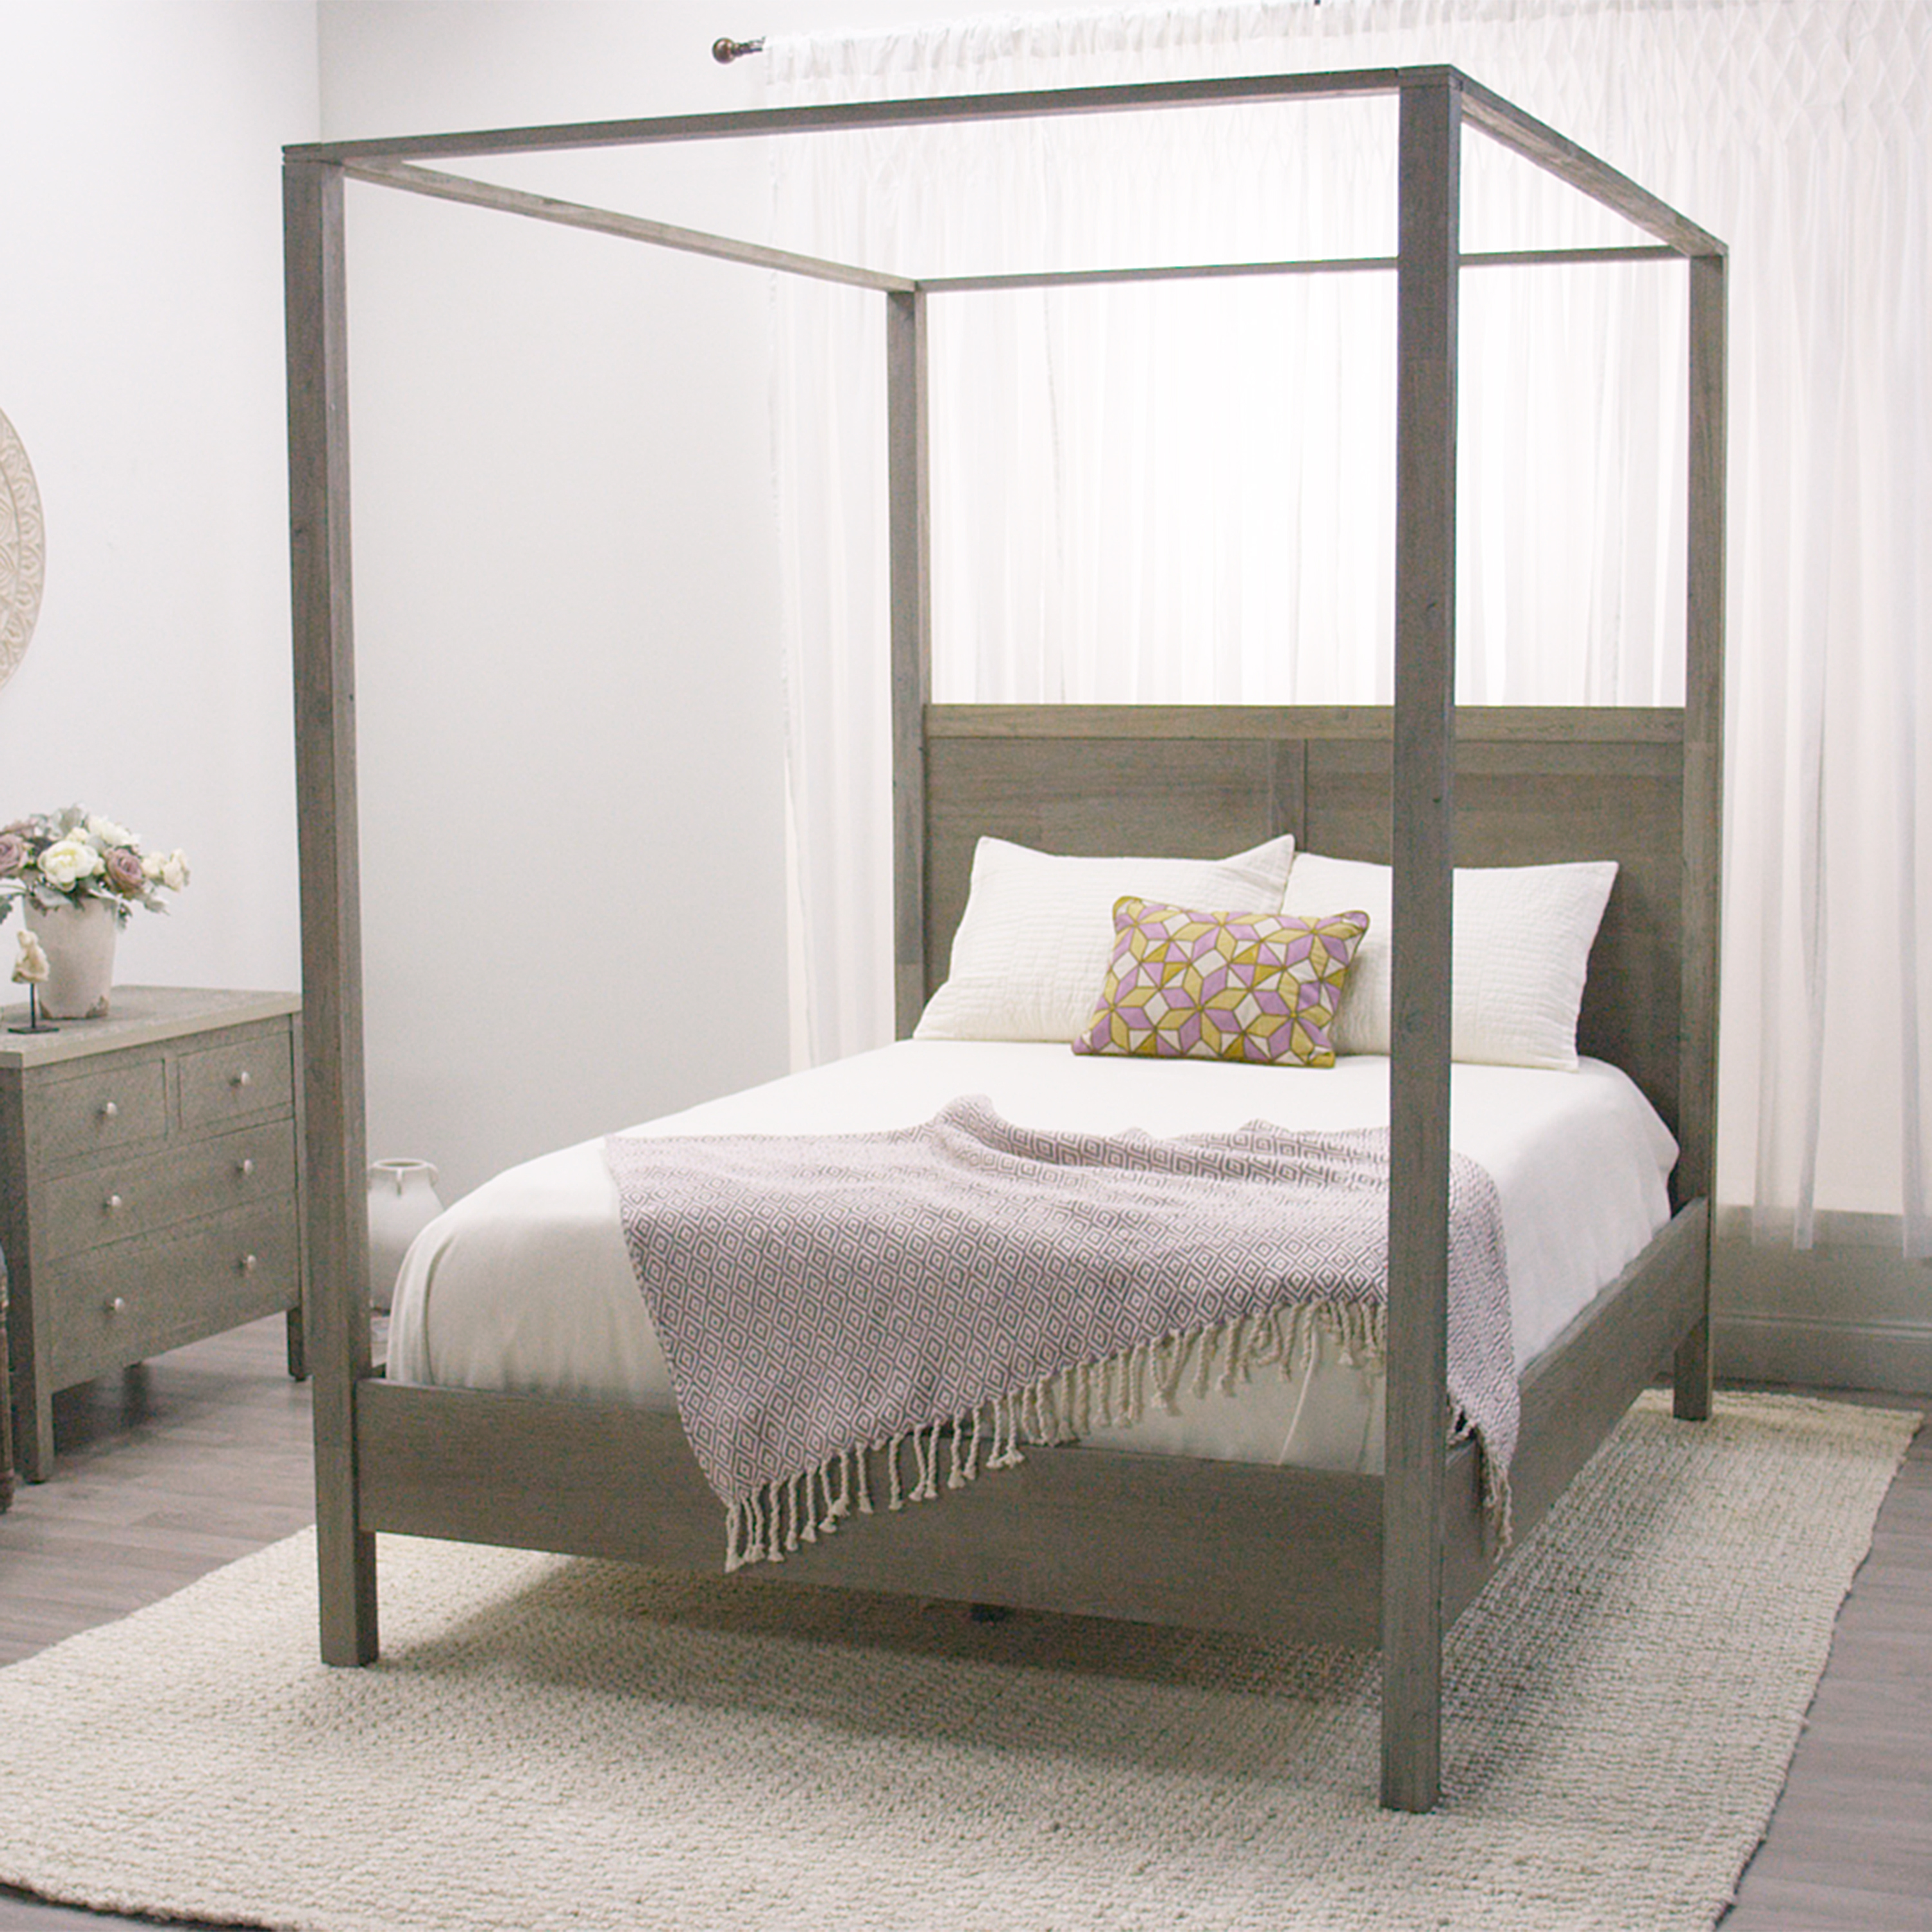 Queen Sets Canopy Bedroom